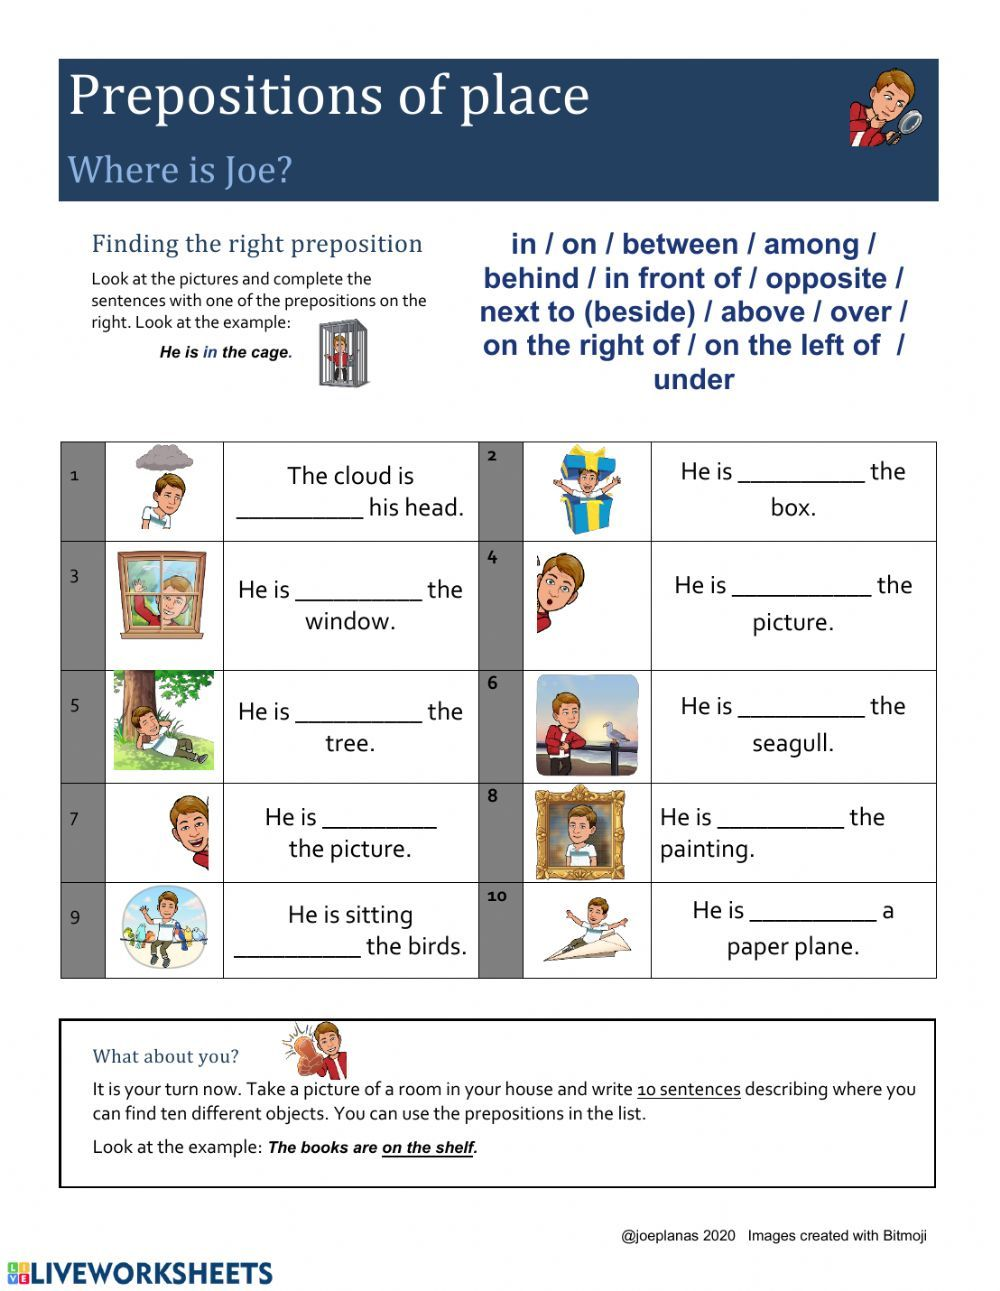 Where Is Joe Prepositions Of Place Interactive Worksheet Prepositions Worksheets English As A Second Language Esl